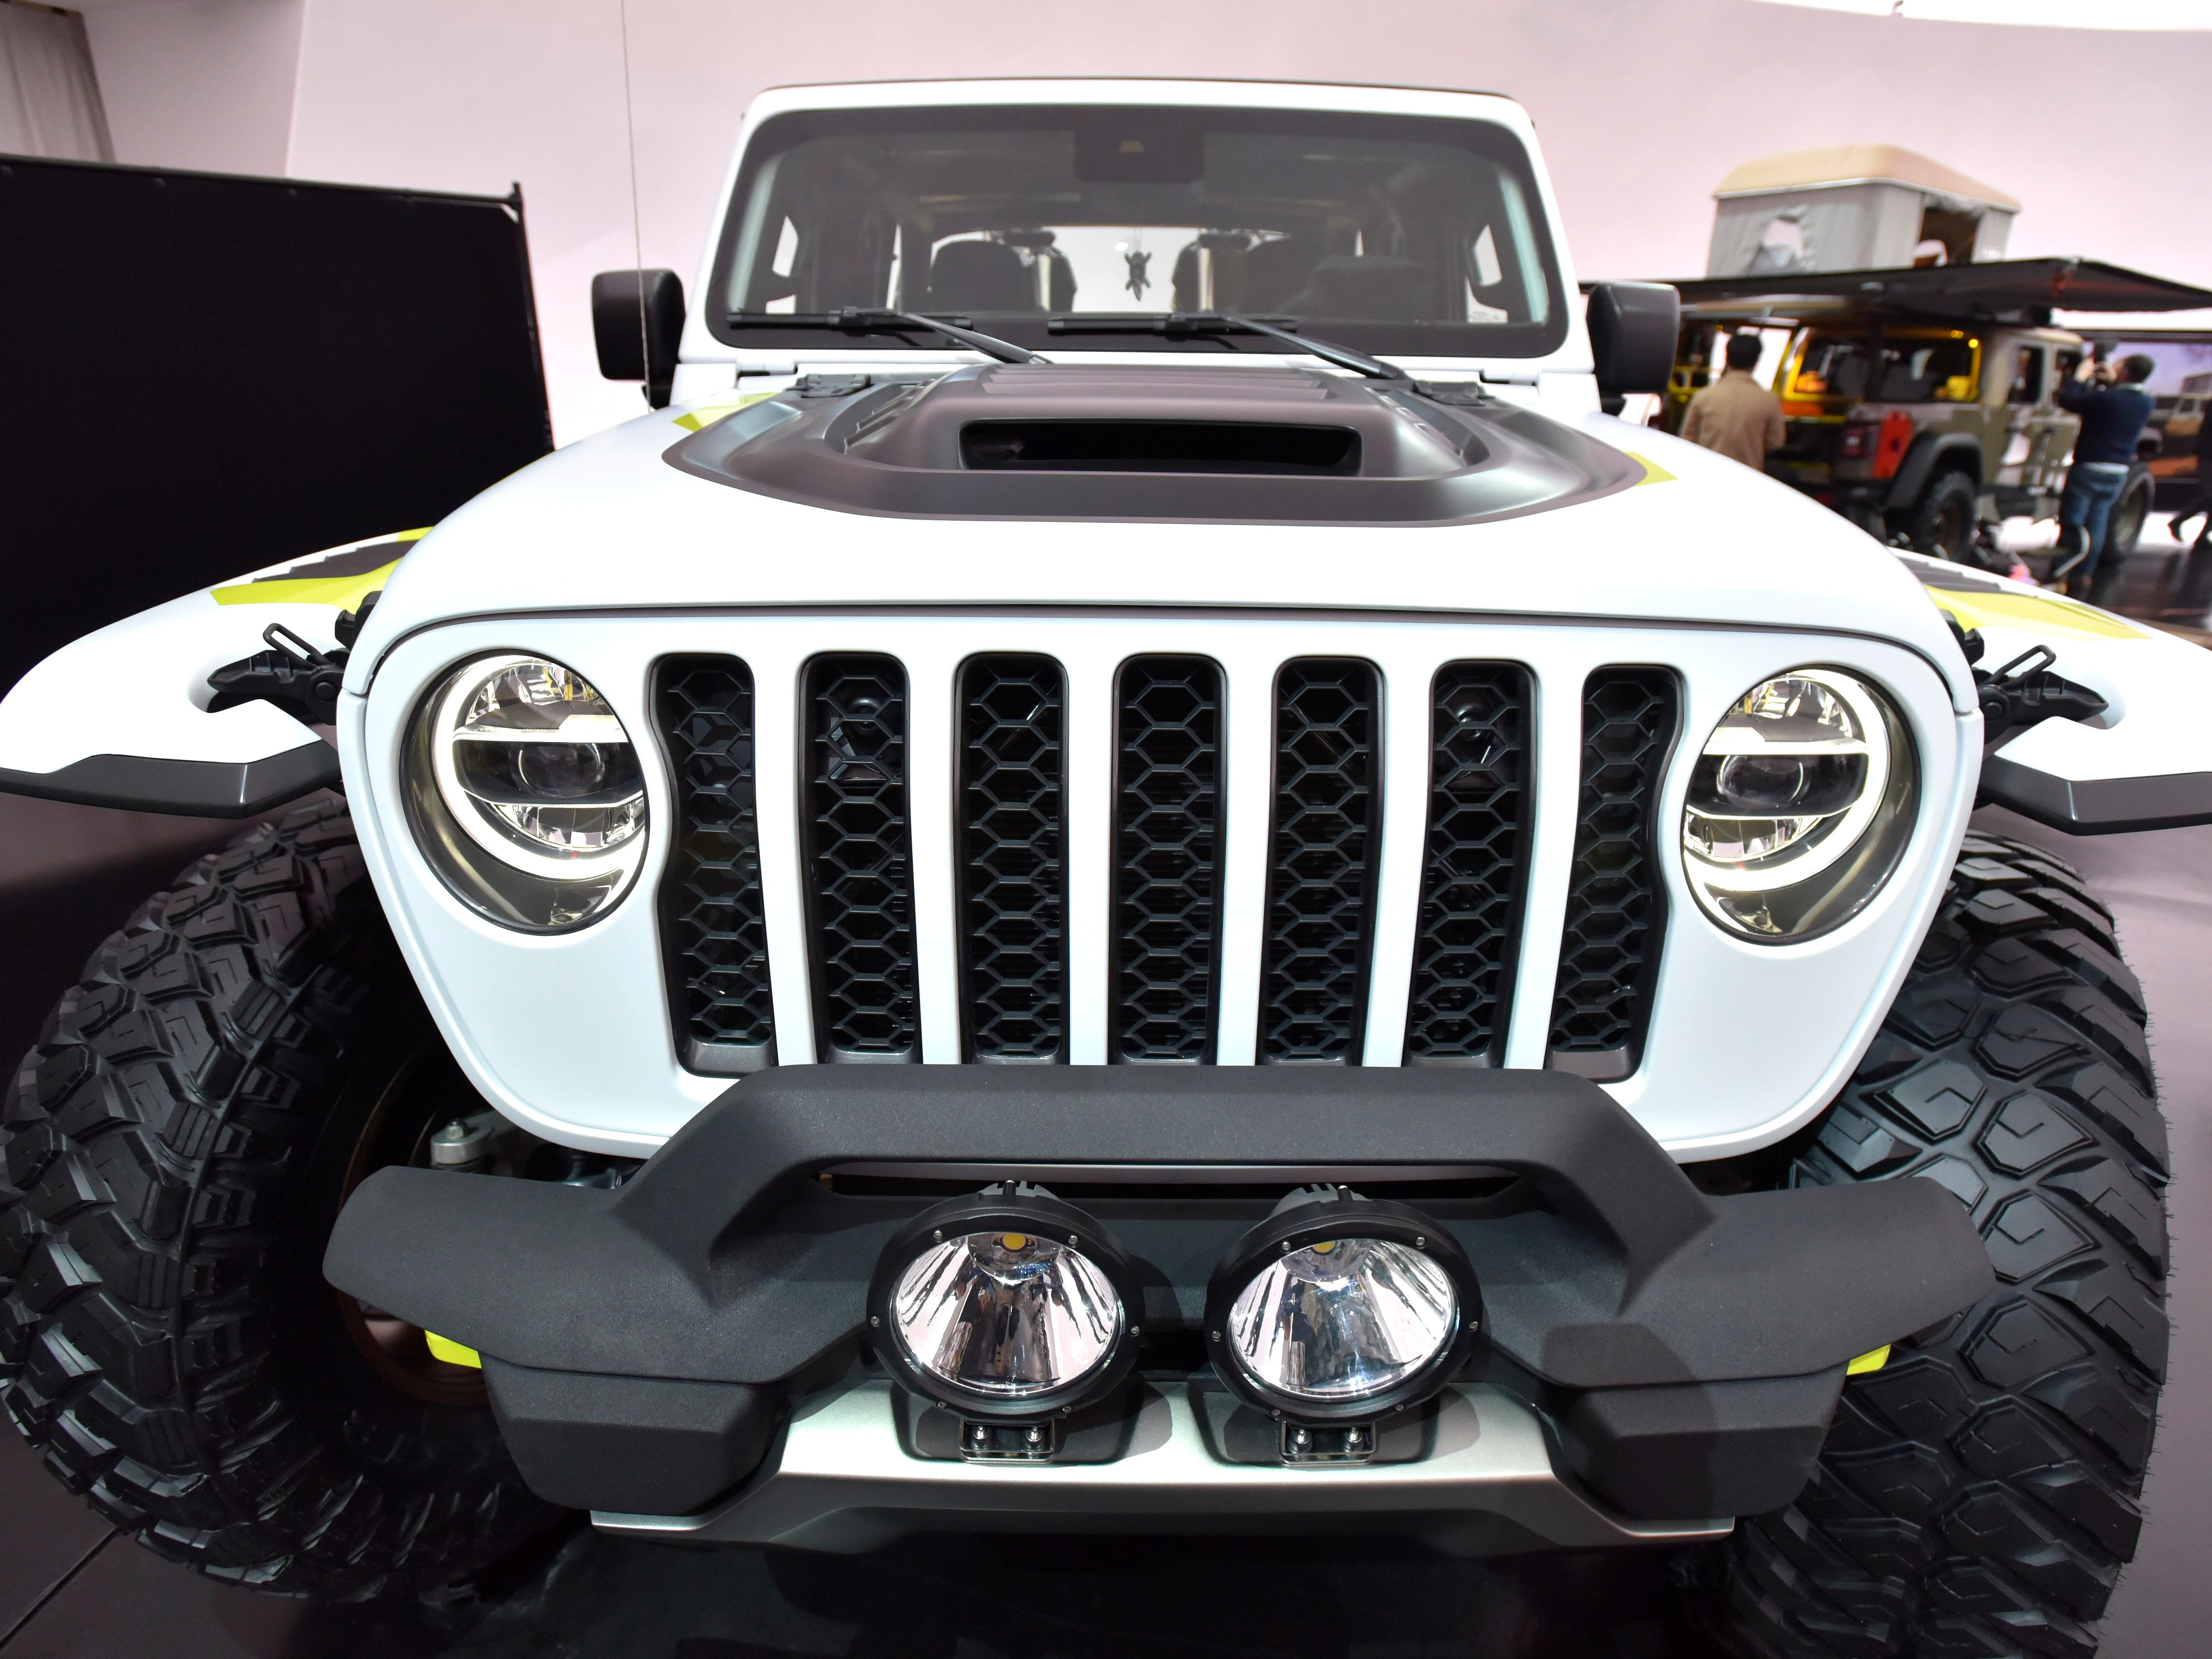 This is the front grille and headlights of the Jeep Flatbill.